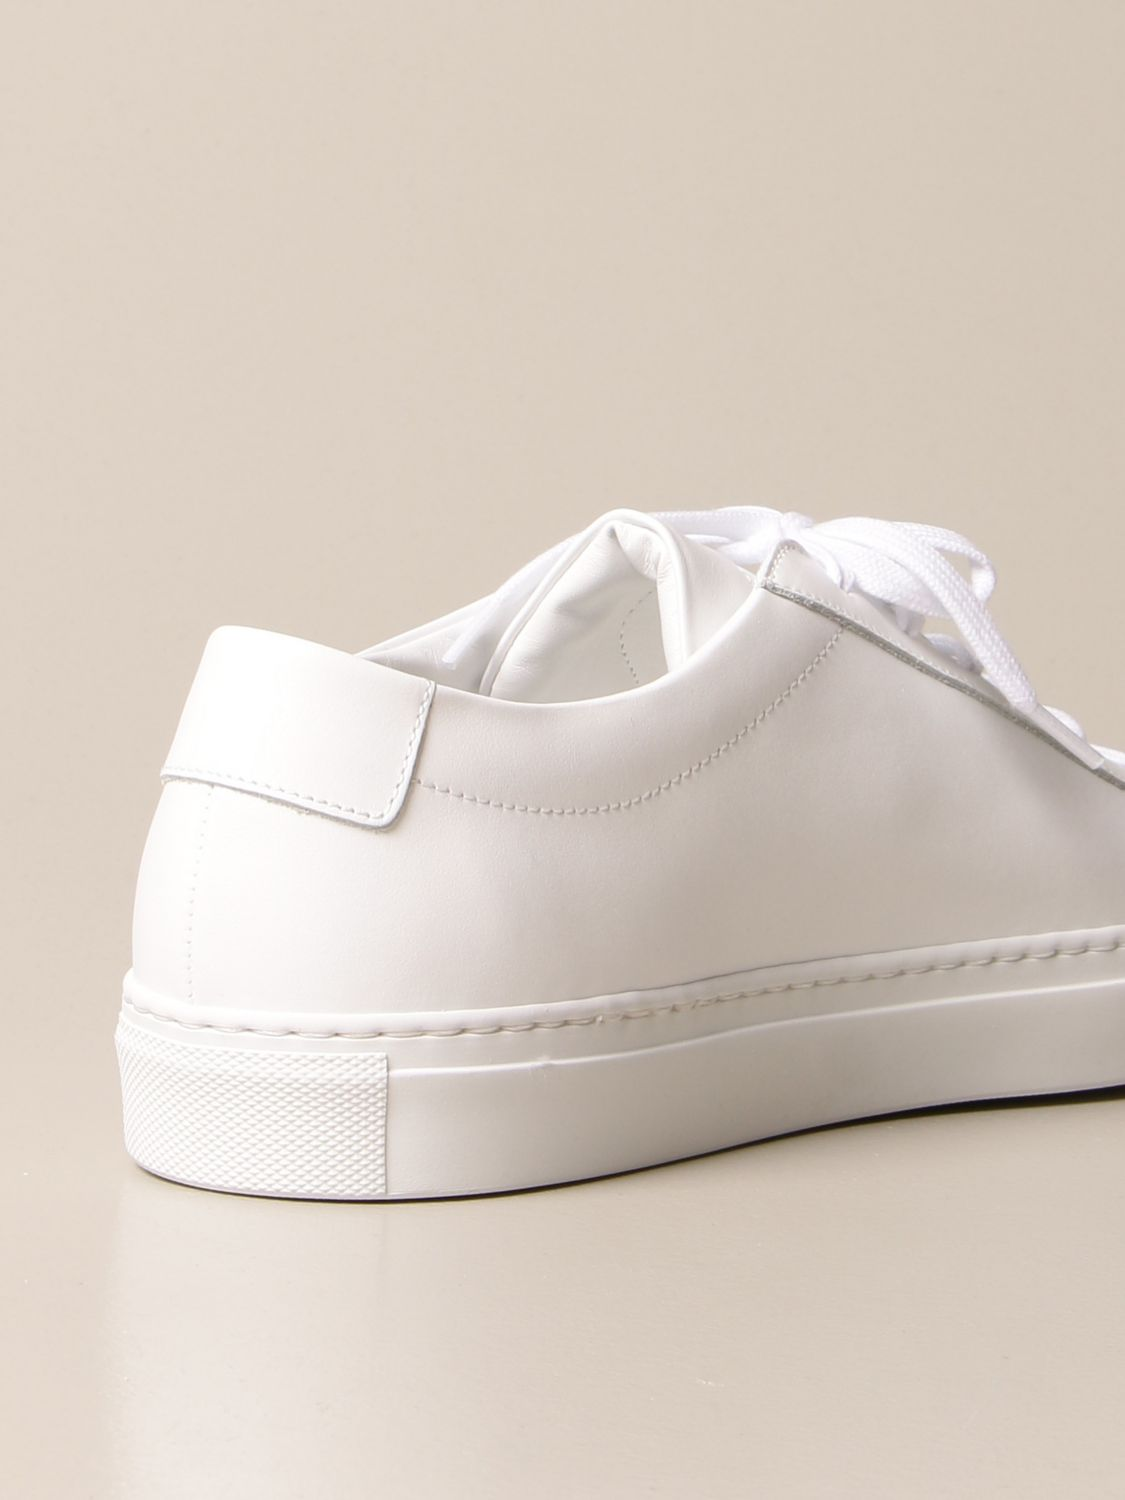 Sneakers Common Projects: Sneakers herren Common Projects weiß 3